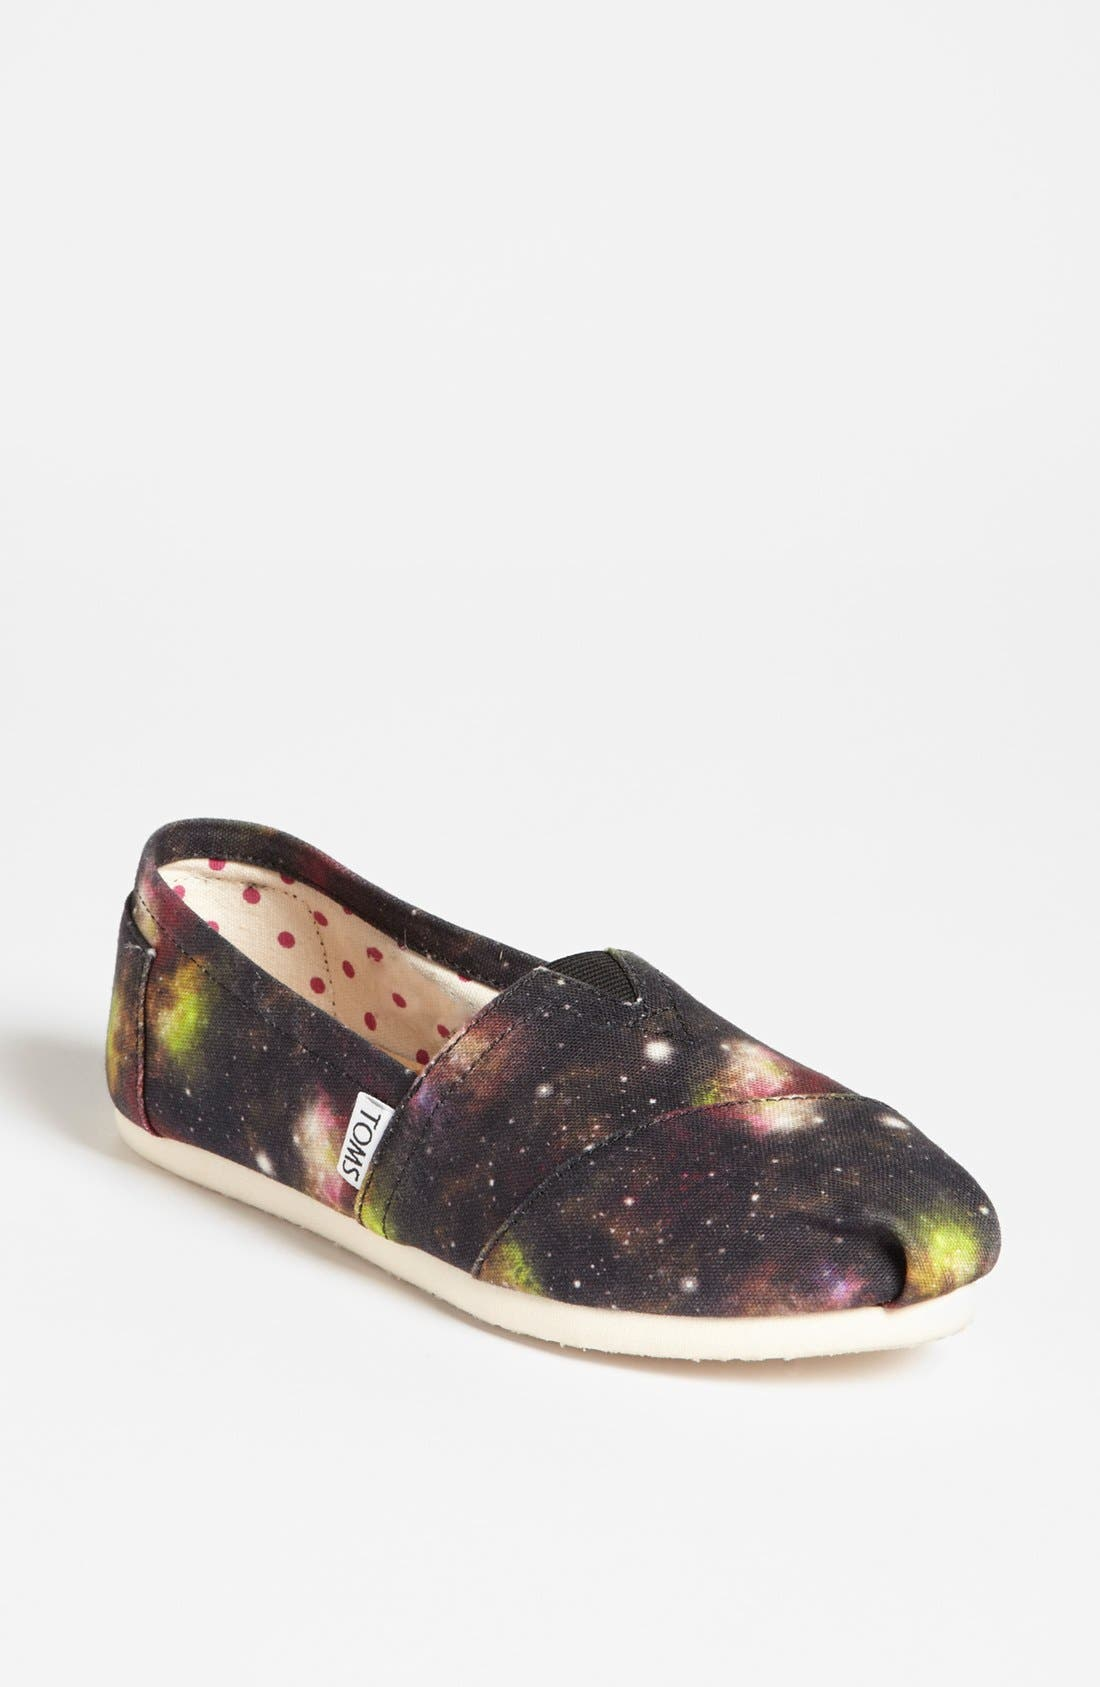 Alternate Image 1 Selected - TOMS 'Classic - Black Nebula' Slip-On (Women) (Exclusive Color)